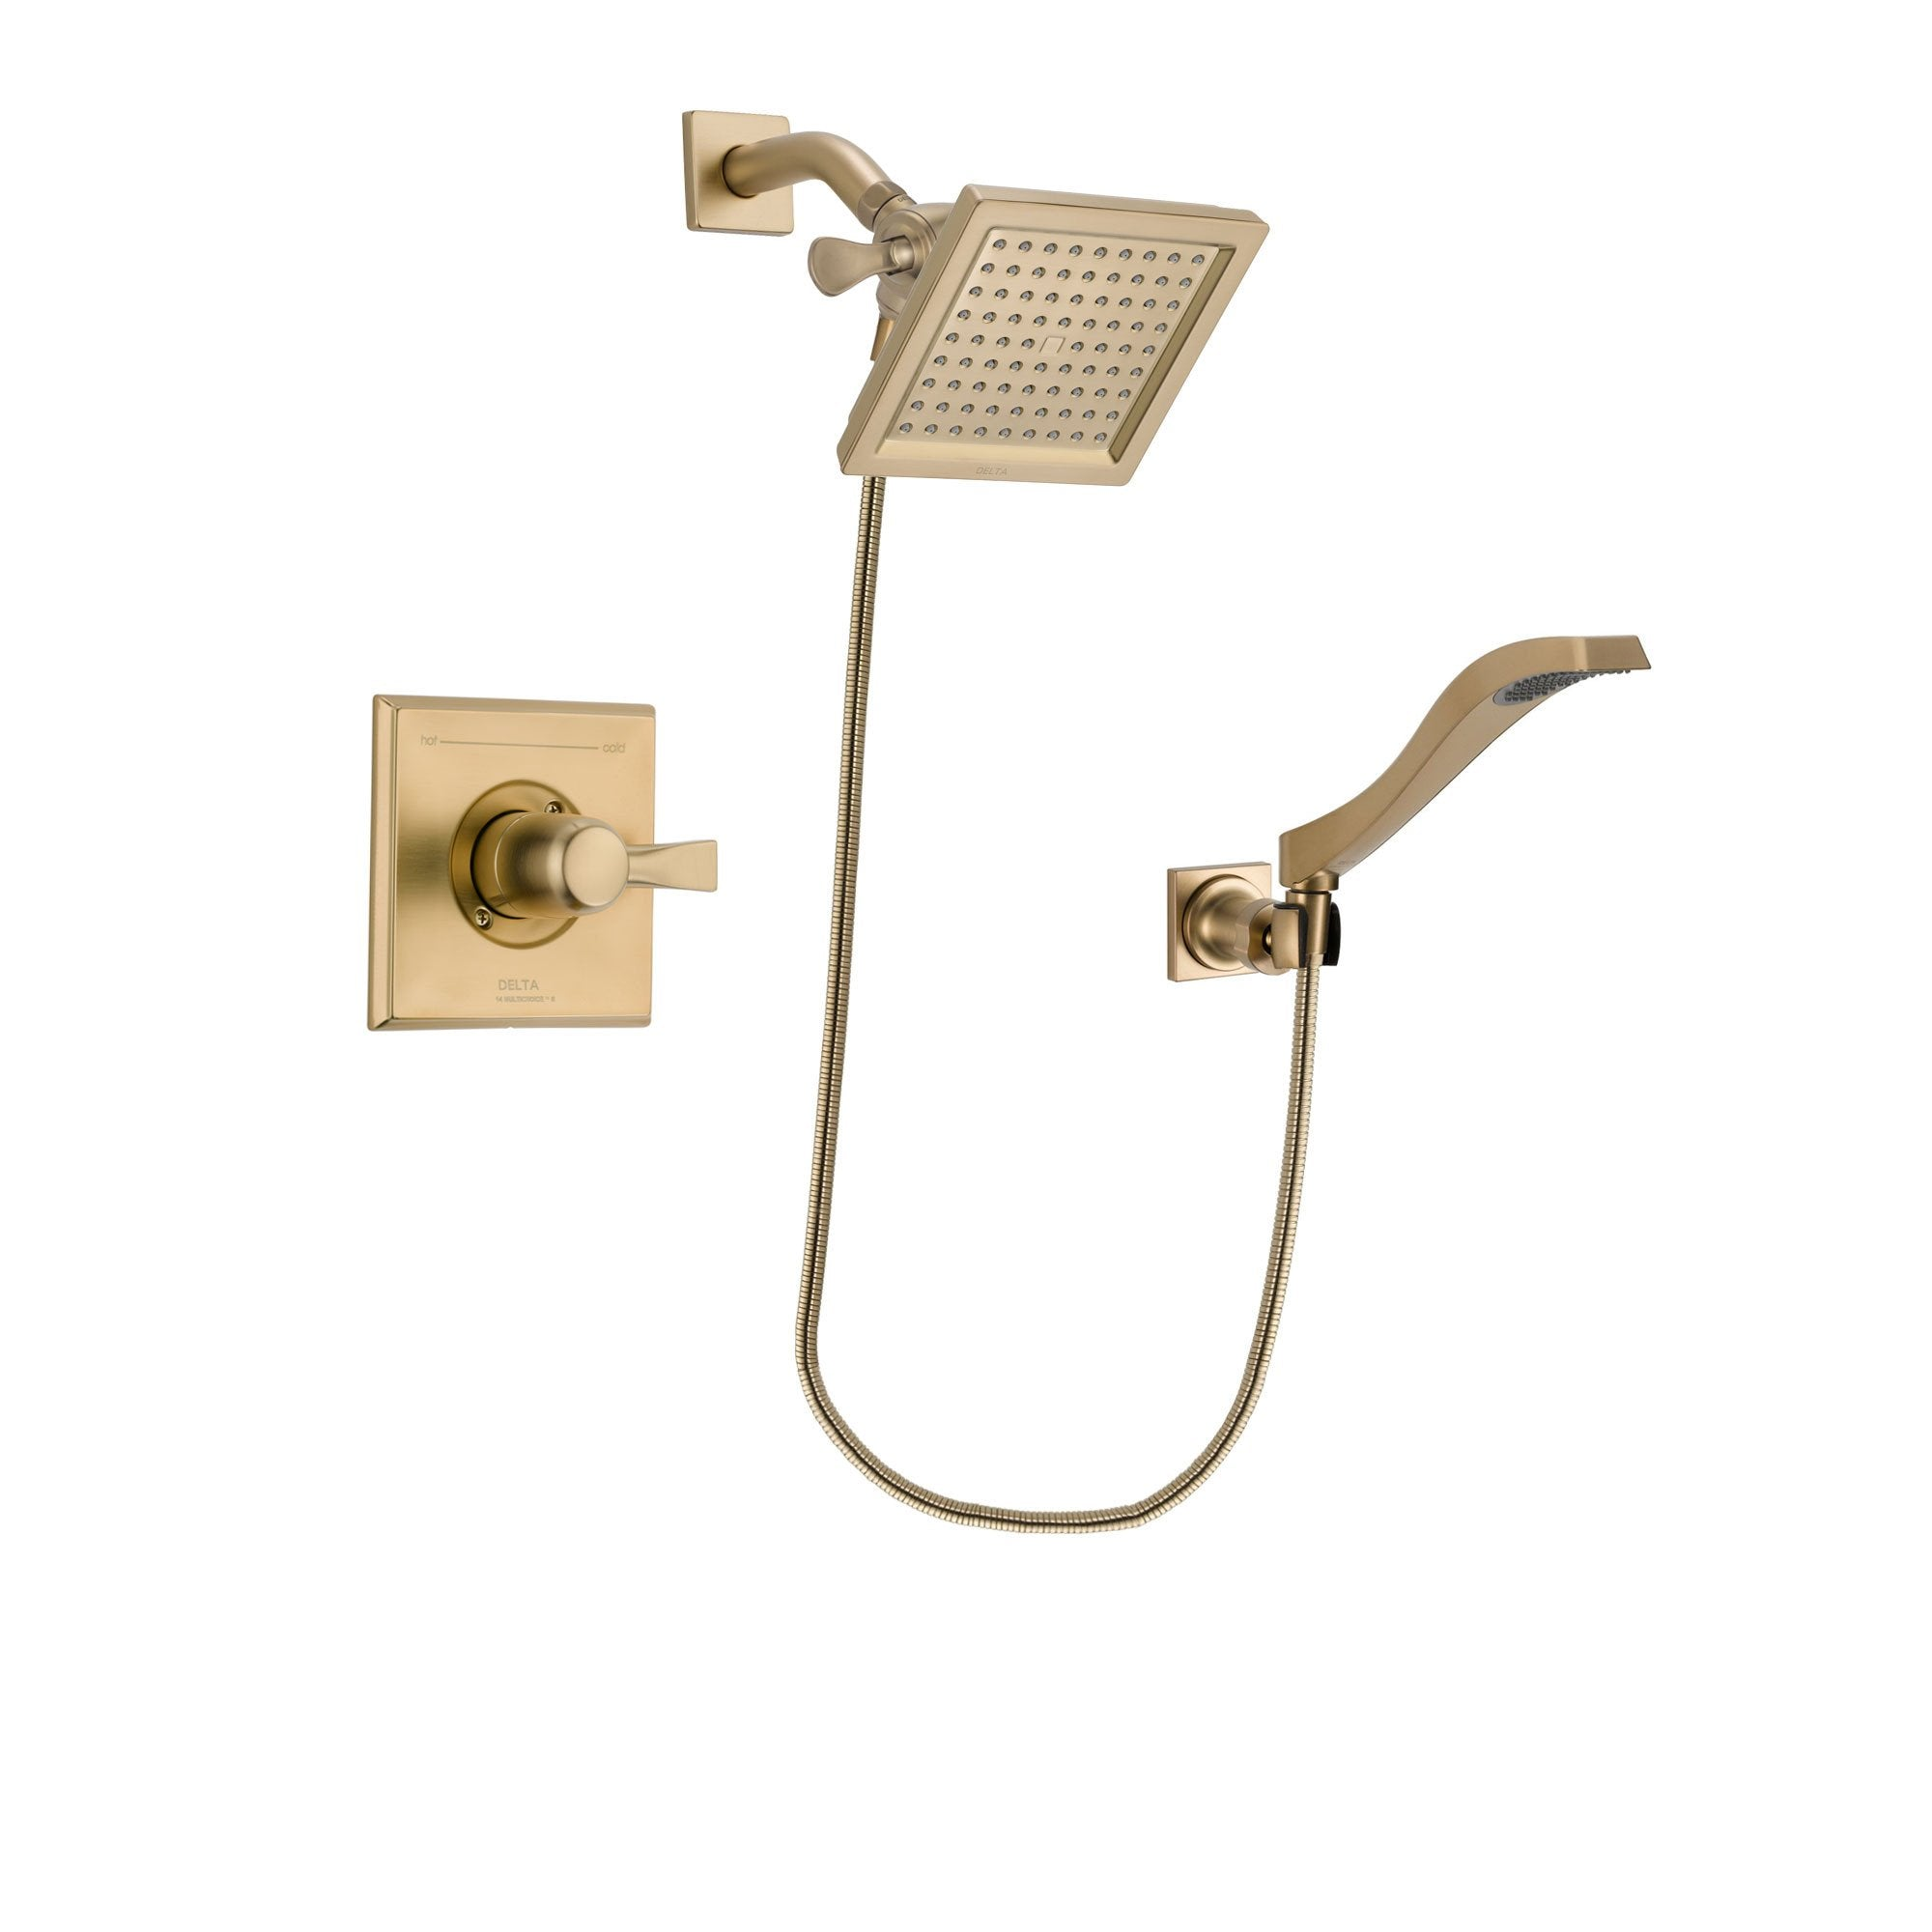 Delta Dryden Champagne Bronze Shower Faucet System with Hand Shower DSP3854V